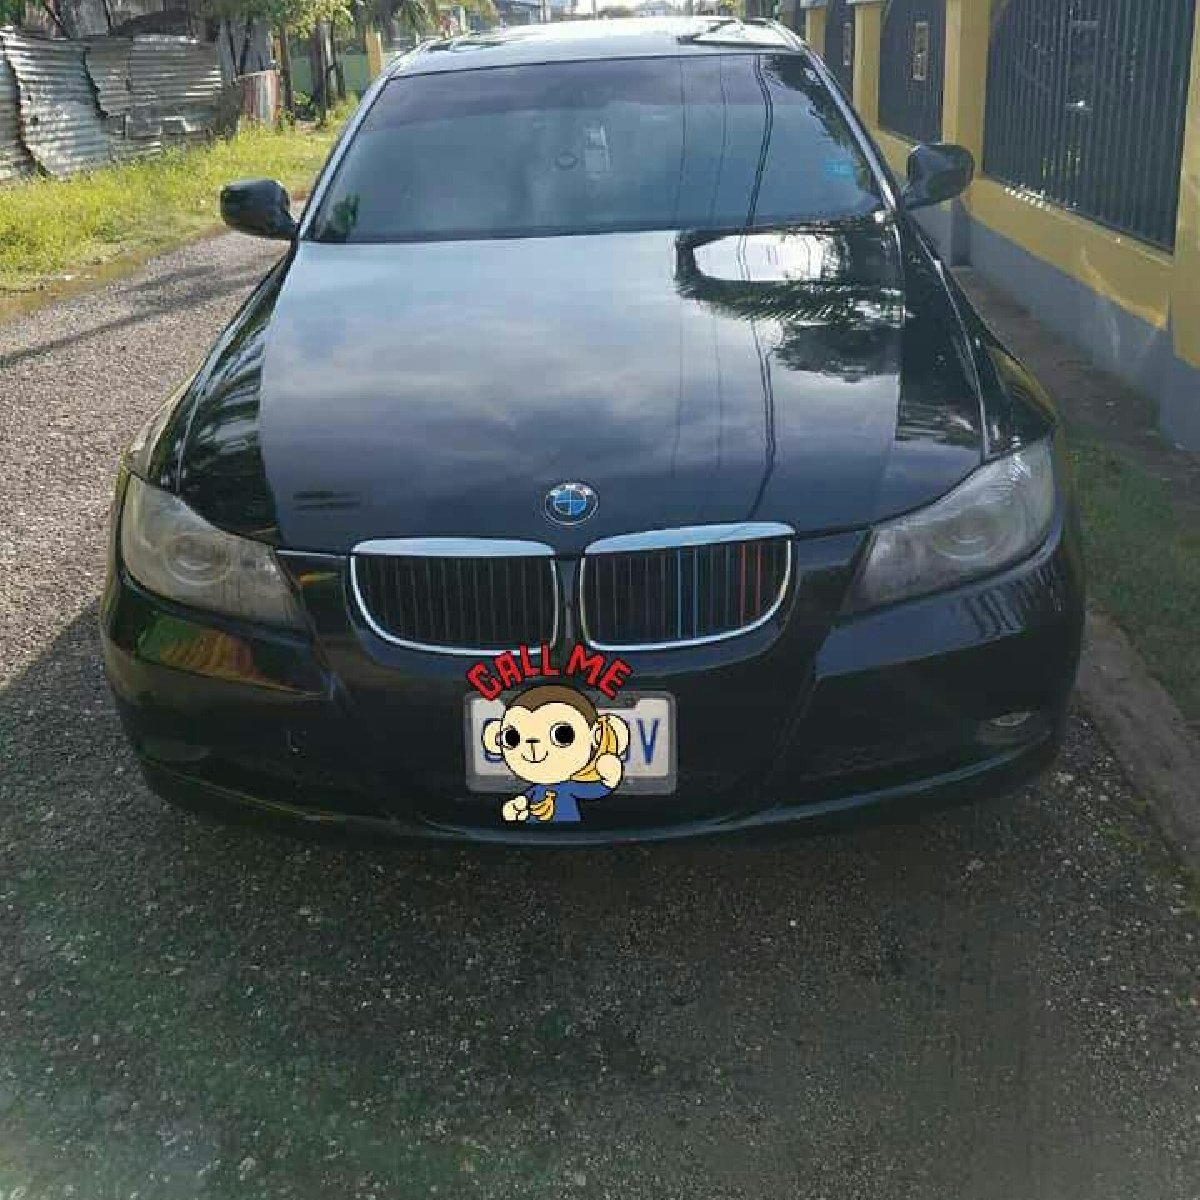 2005 Bmw For Sale: 2005 BMW 320i For Sale In May Pen Clarendon